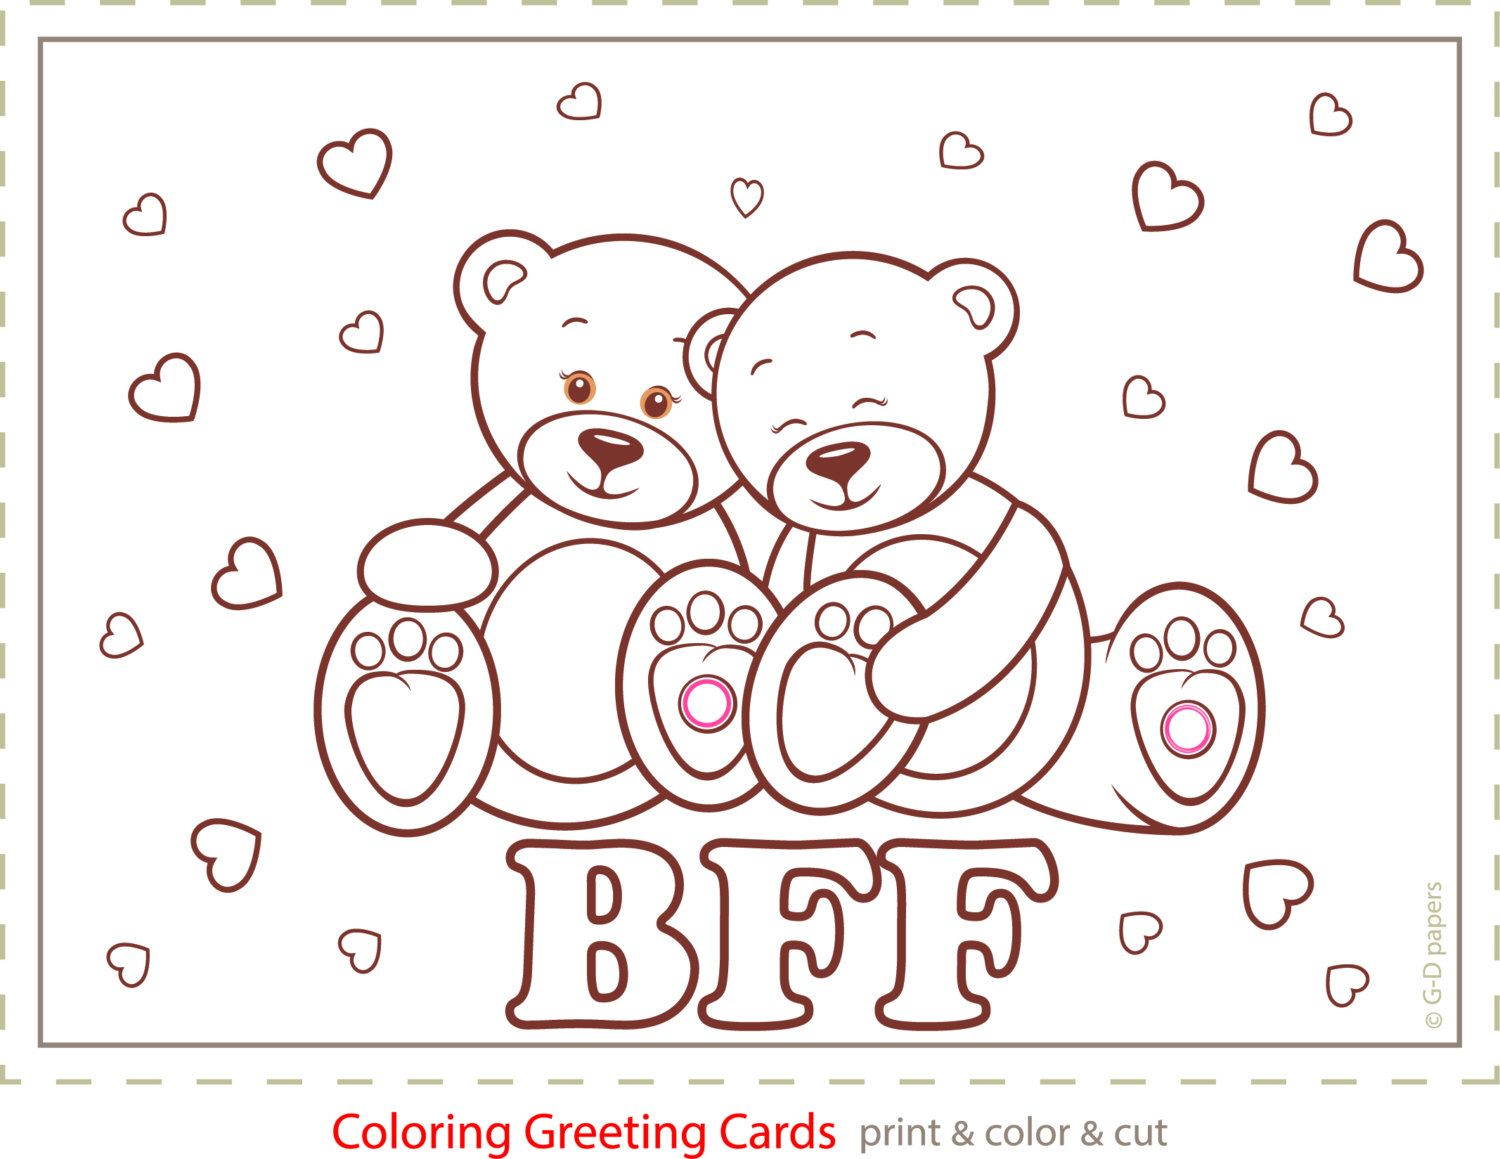 Colouring greeting cards love cards printable cards card to colouring greeting cards love cards printable cards card to print love cards kristyandbryce Image collections